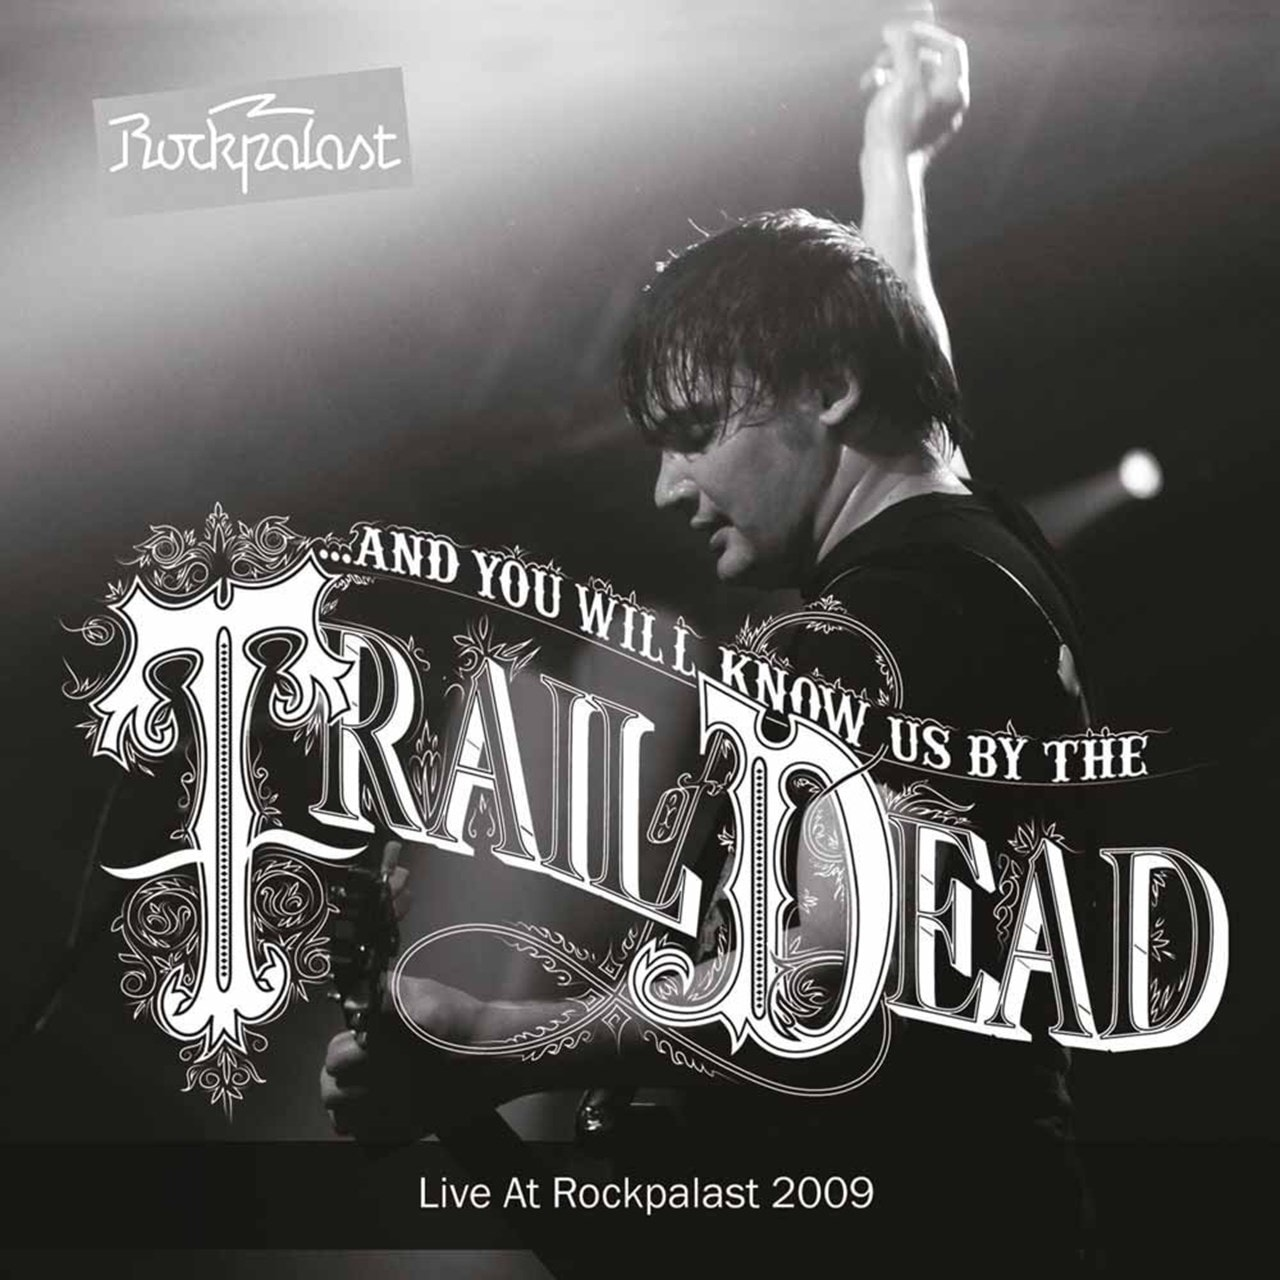 Live at Rockpalast 2009 - 1